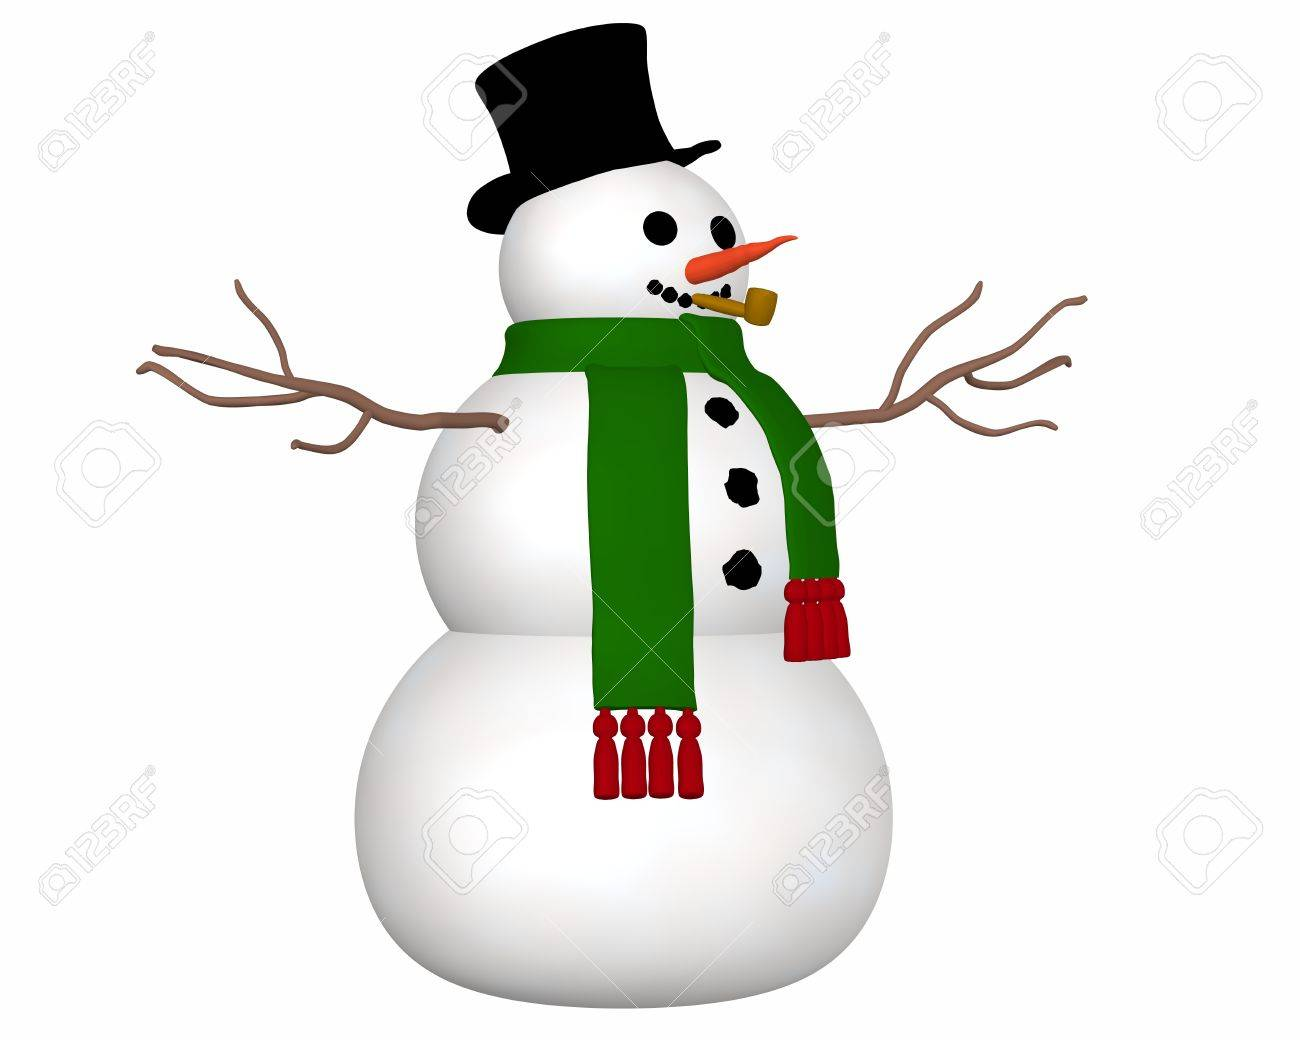 A angled view illustration of a snowman wearing a black top hat and green scarf and a carrot nose. - 11277135